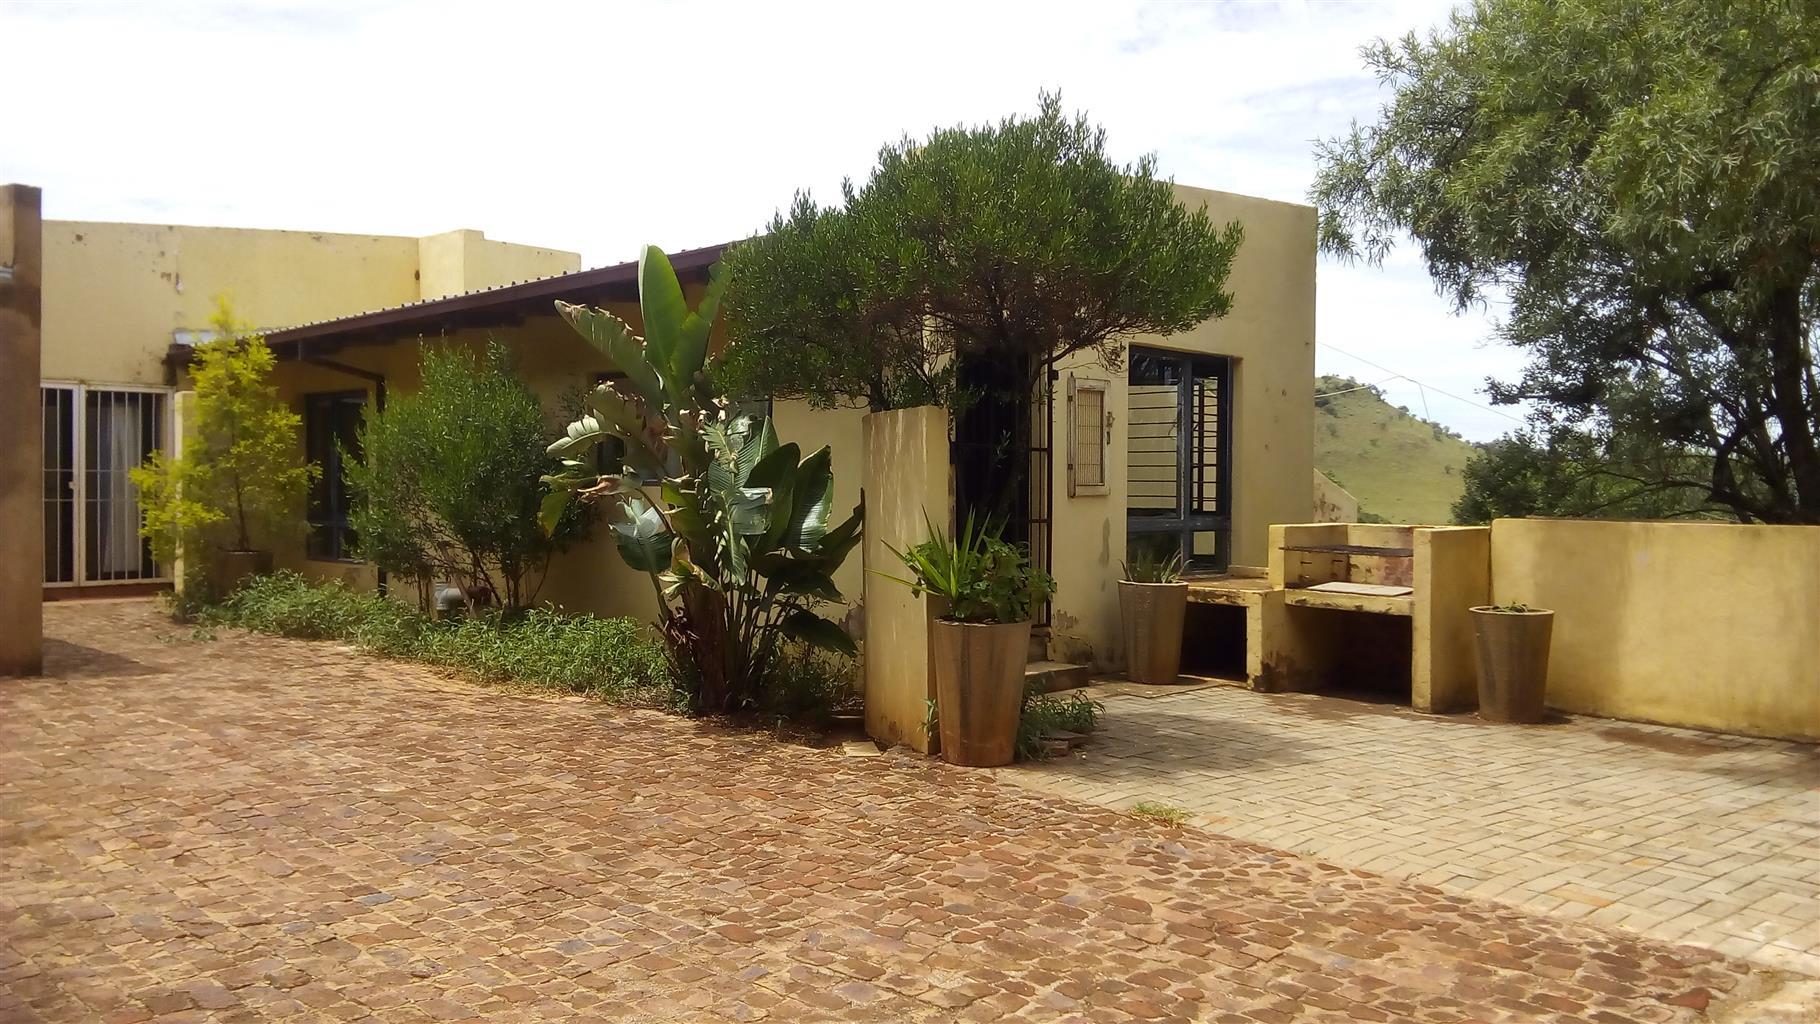 Flat to rent in Broederstroom, Harties